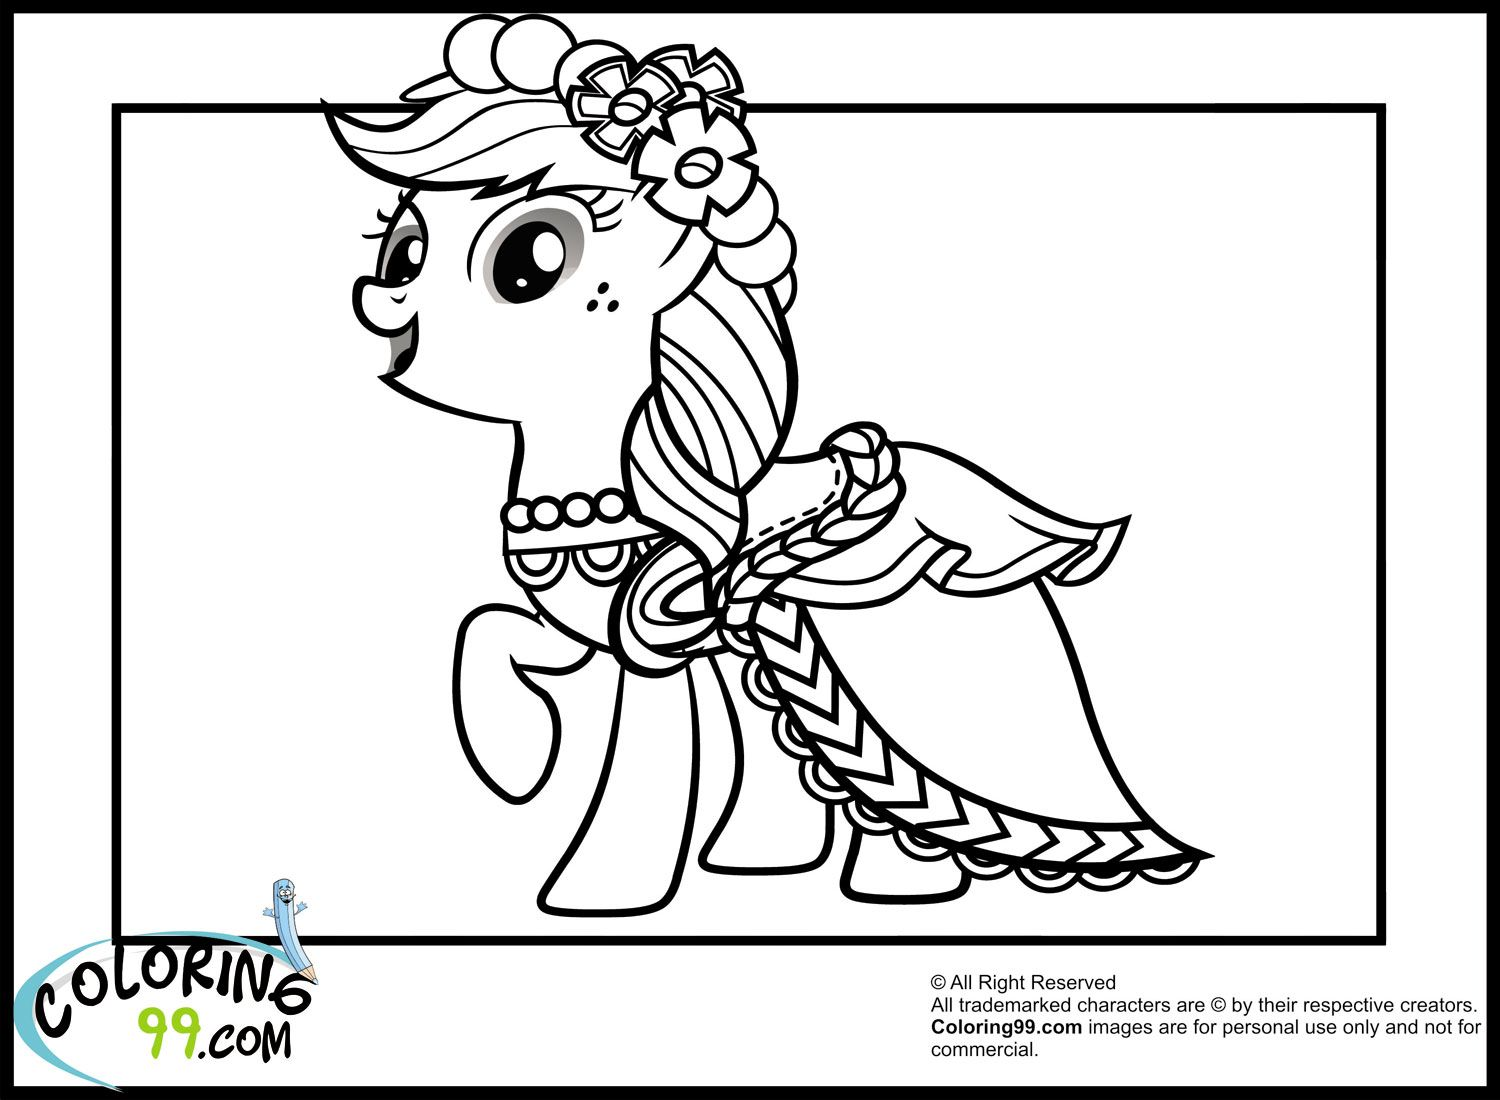 My Little Pony Applejack Coloring Pages Team colors Cool